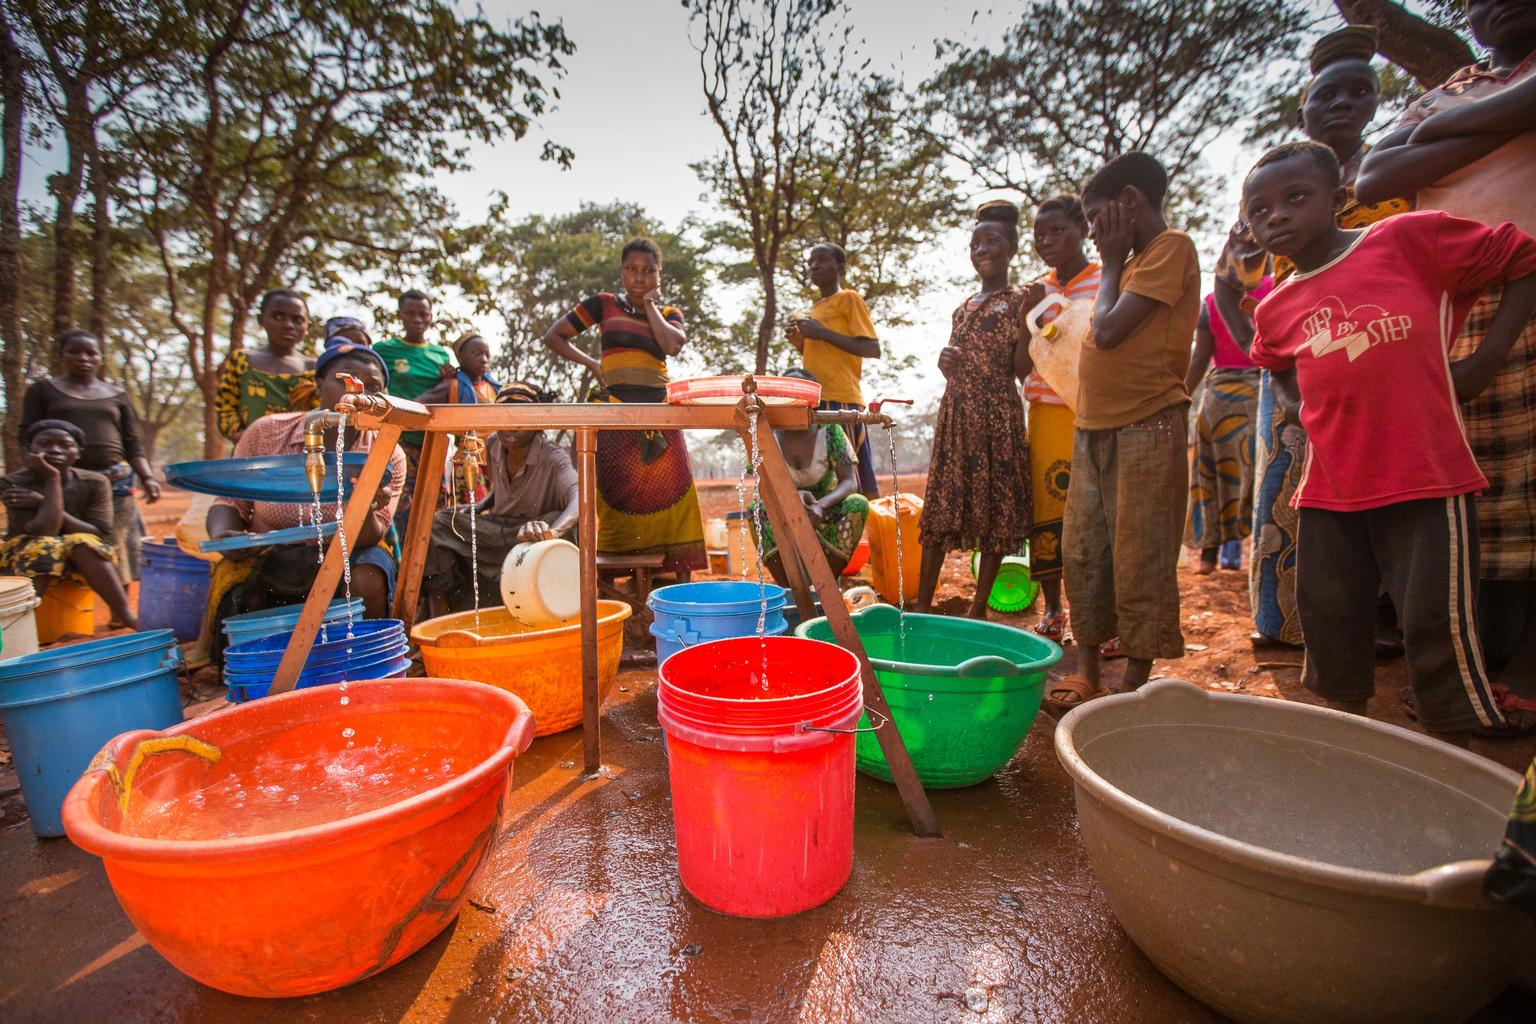 In June 2015, Congolese girls and young women fill their water containers in the Nyarugusu refugee camp in Tanzania.